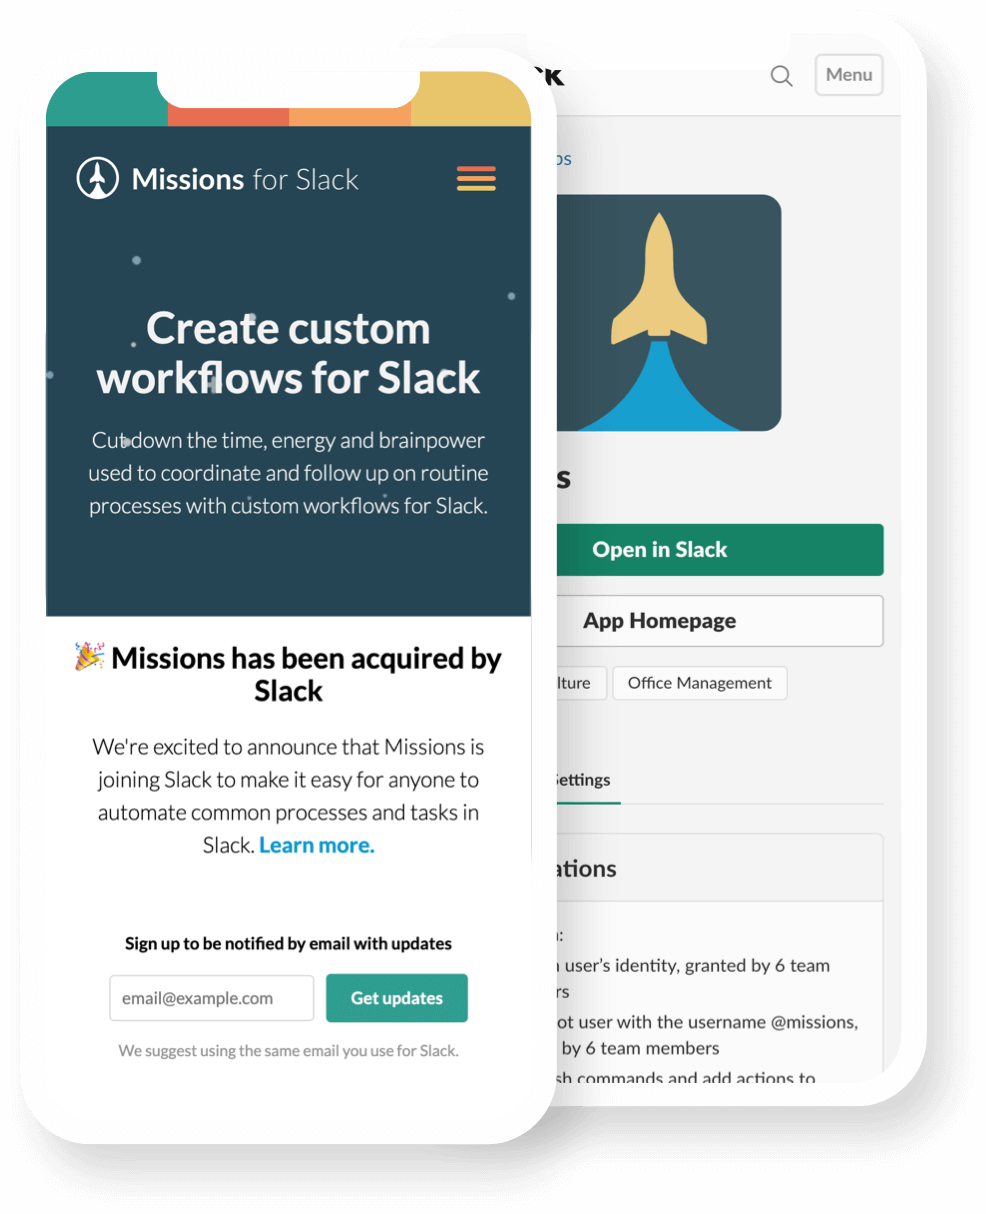 Missions for Slack iPhone app